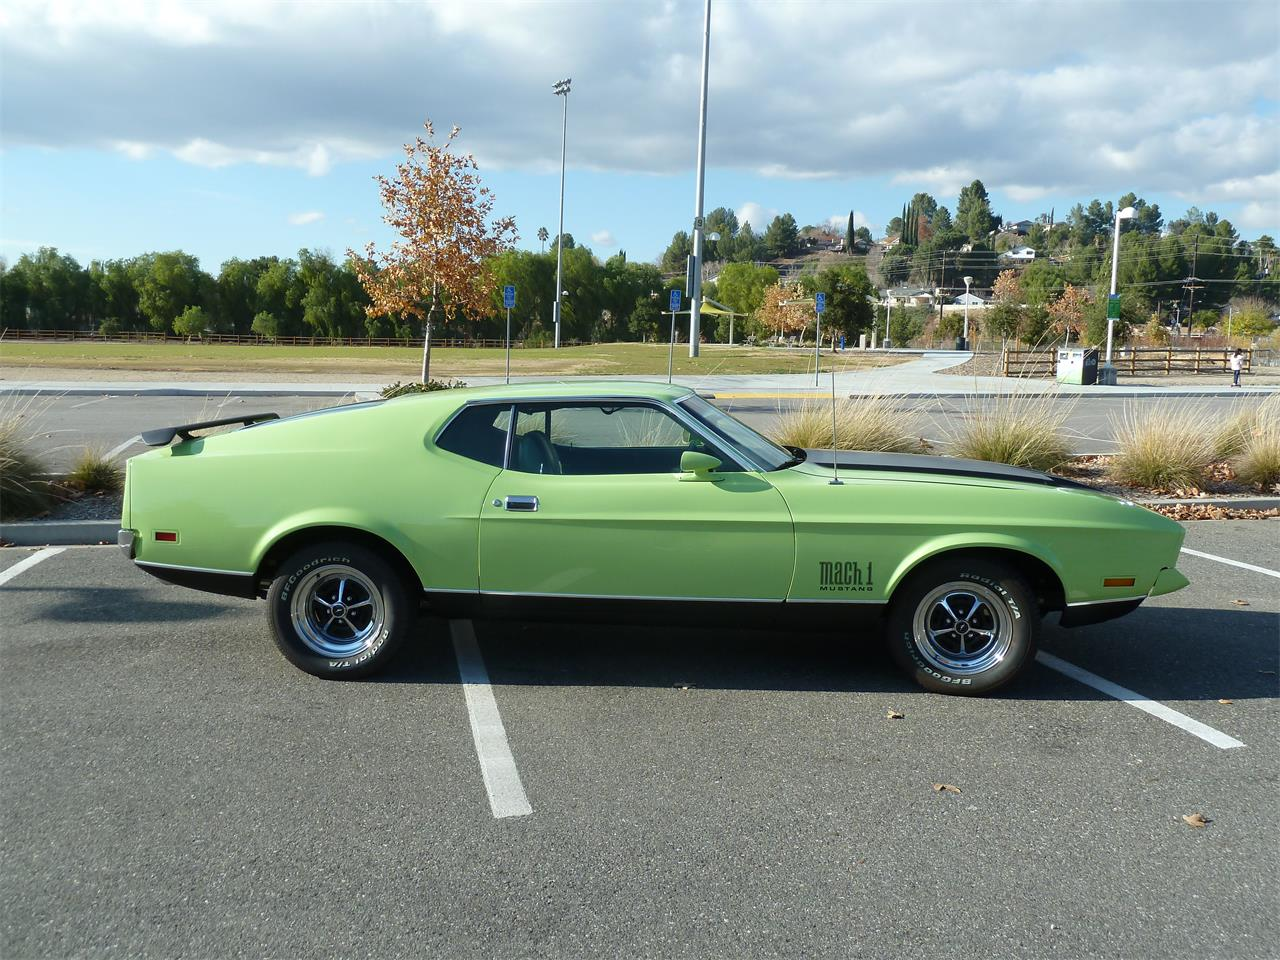 Large Picture of '71 Ford Mustang Mach 1 located in Saugus California - $24,950.00 Offered by a Private Seller - LEX9